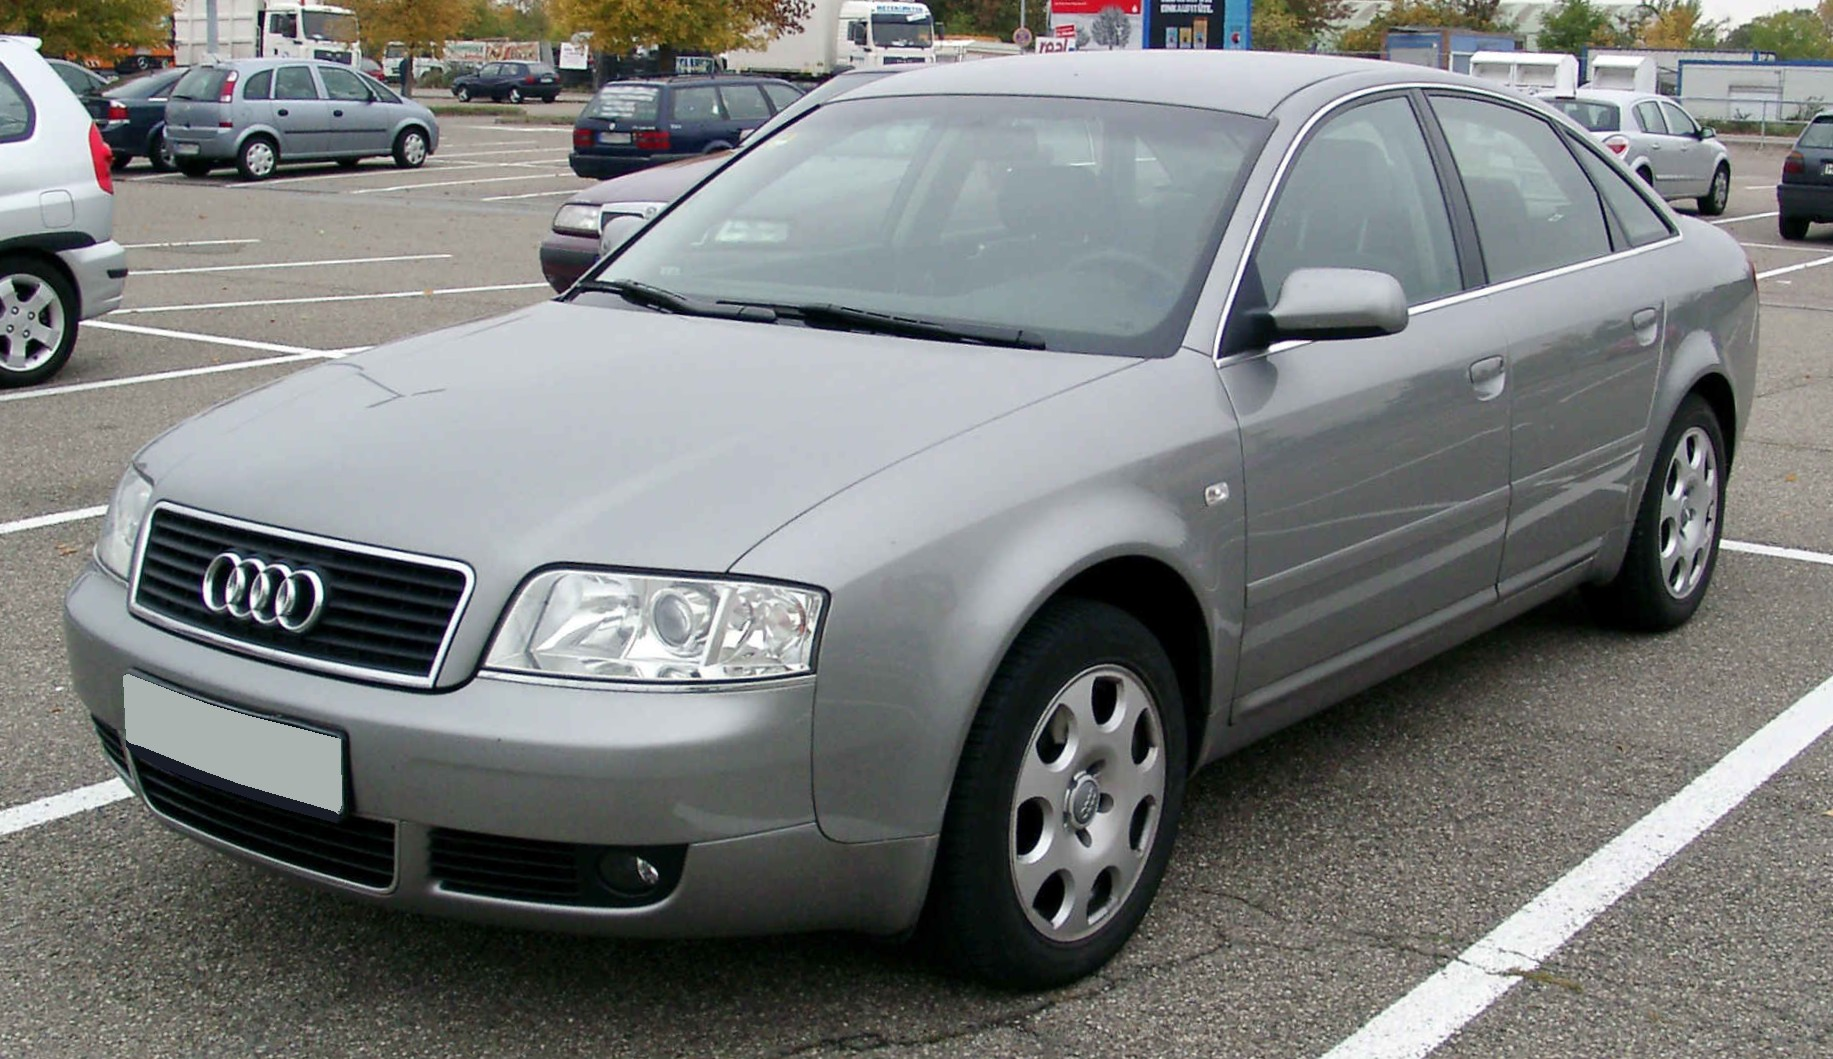 1999 audi a6 4b c5 pictures information and specs. Black Bedroom Furniture Sets. Home Design Ideas